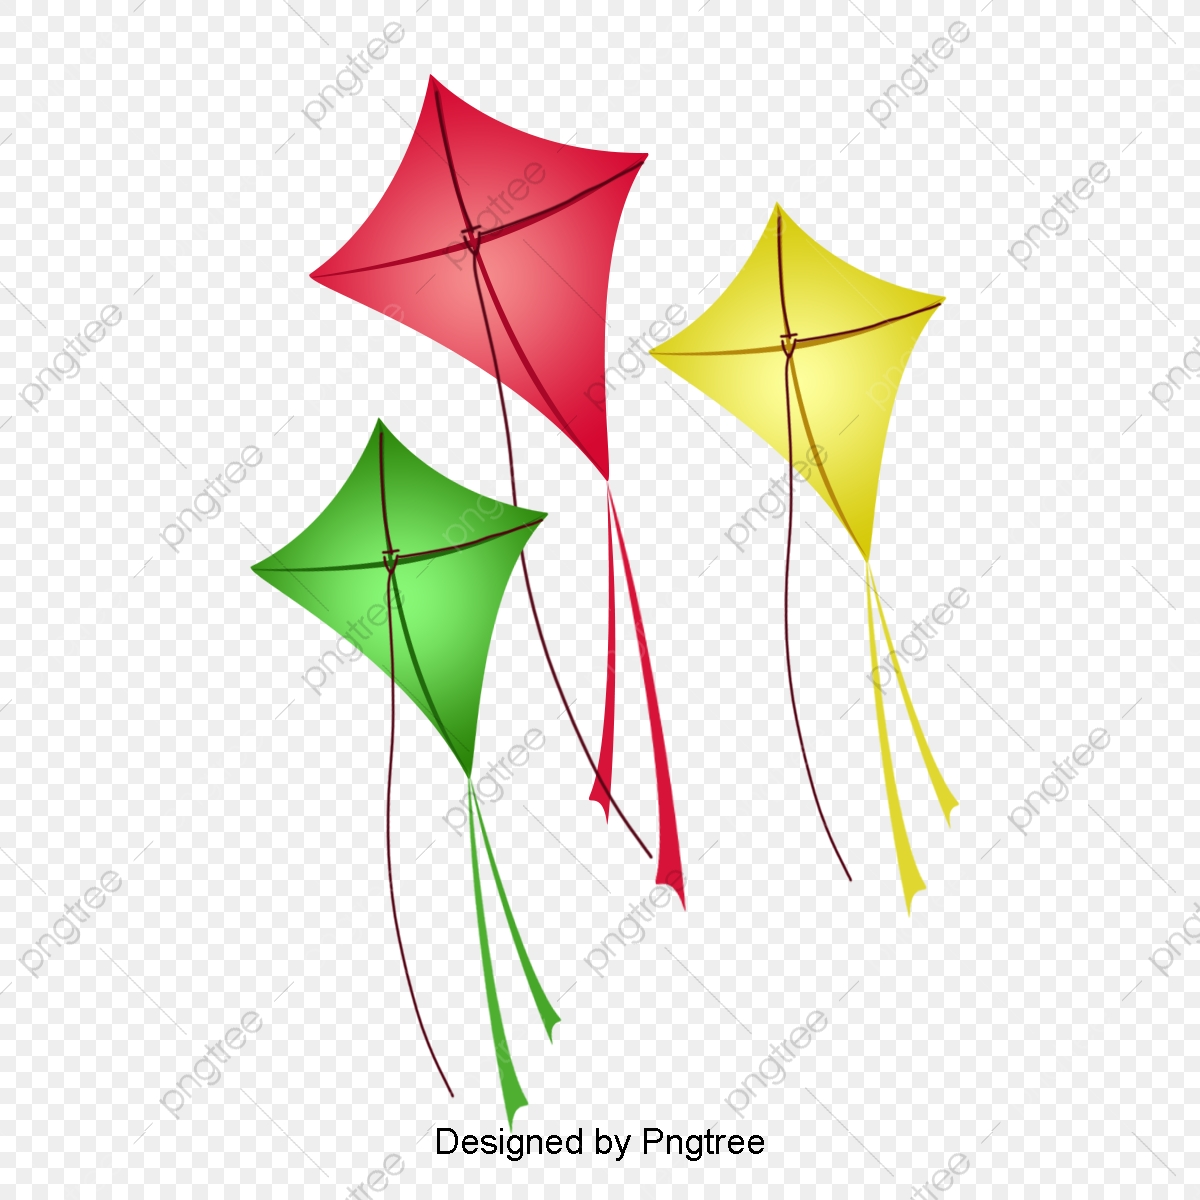 Kite Vector File, Kite Clipart, Outdoor Activity, Colorful Kites PNG.